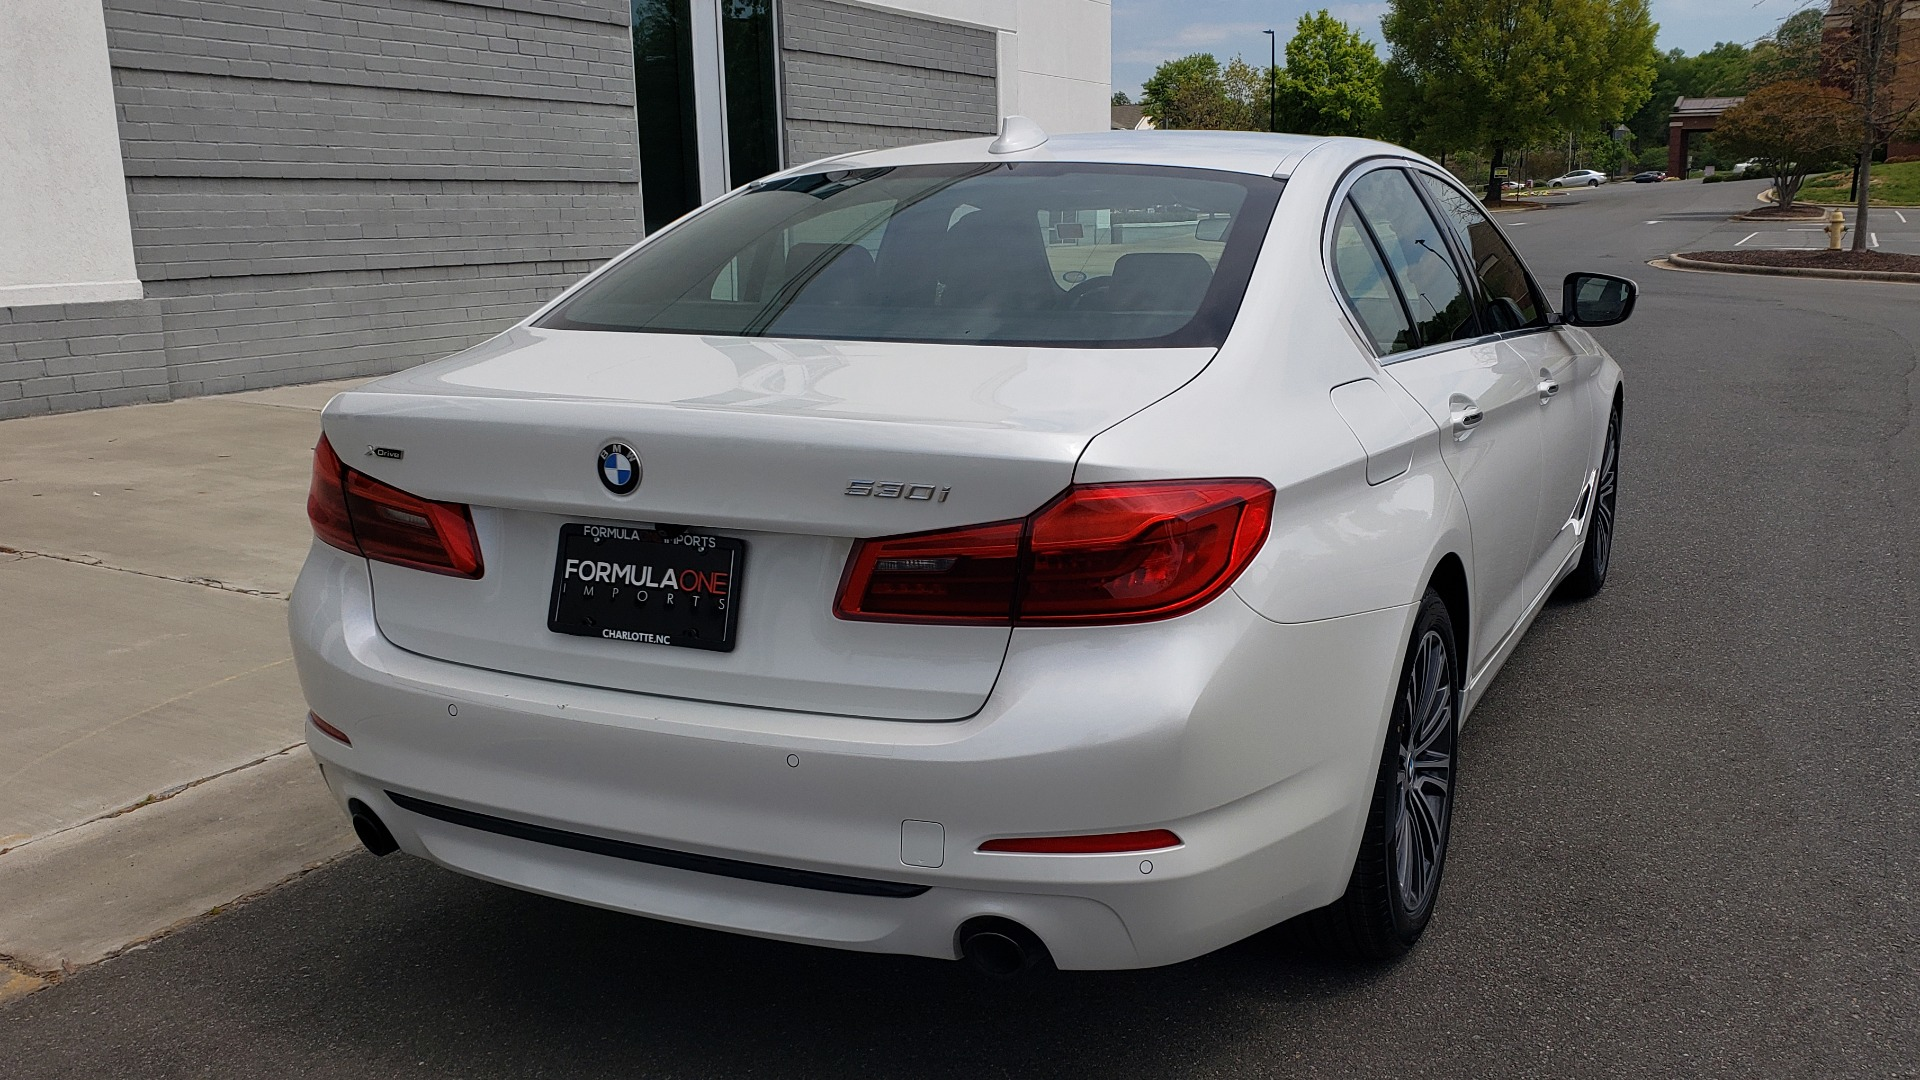 Used 2018 BMW 5 SERIES 530I XDRIVE PREMIUM / NAV / DRVR ASST / PARK ASST / H/K SND for sale $32,795 at Formula Imports in Charlotte NC 28227 6